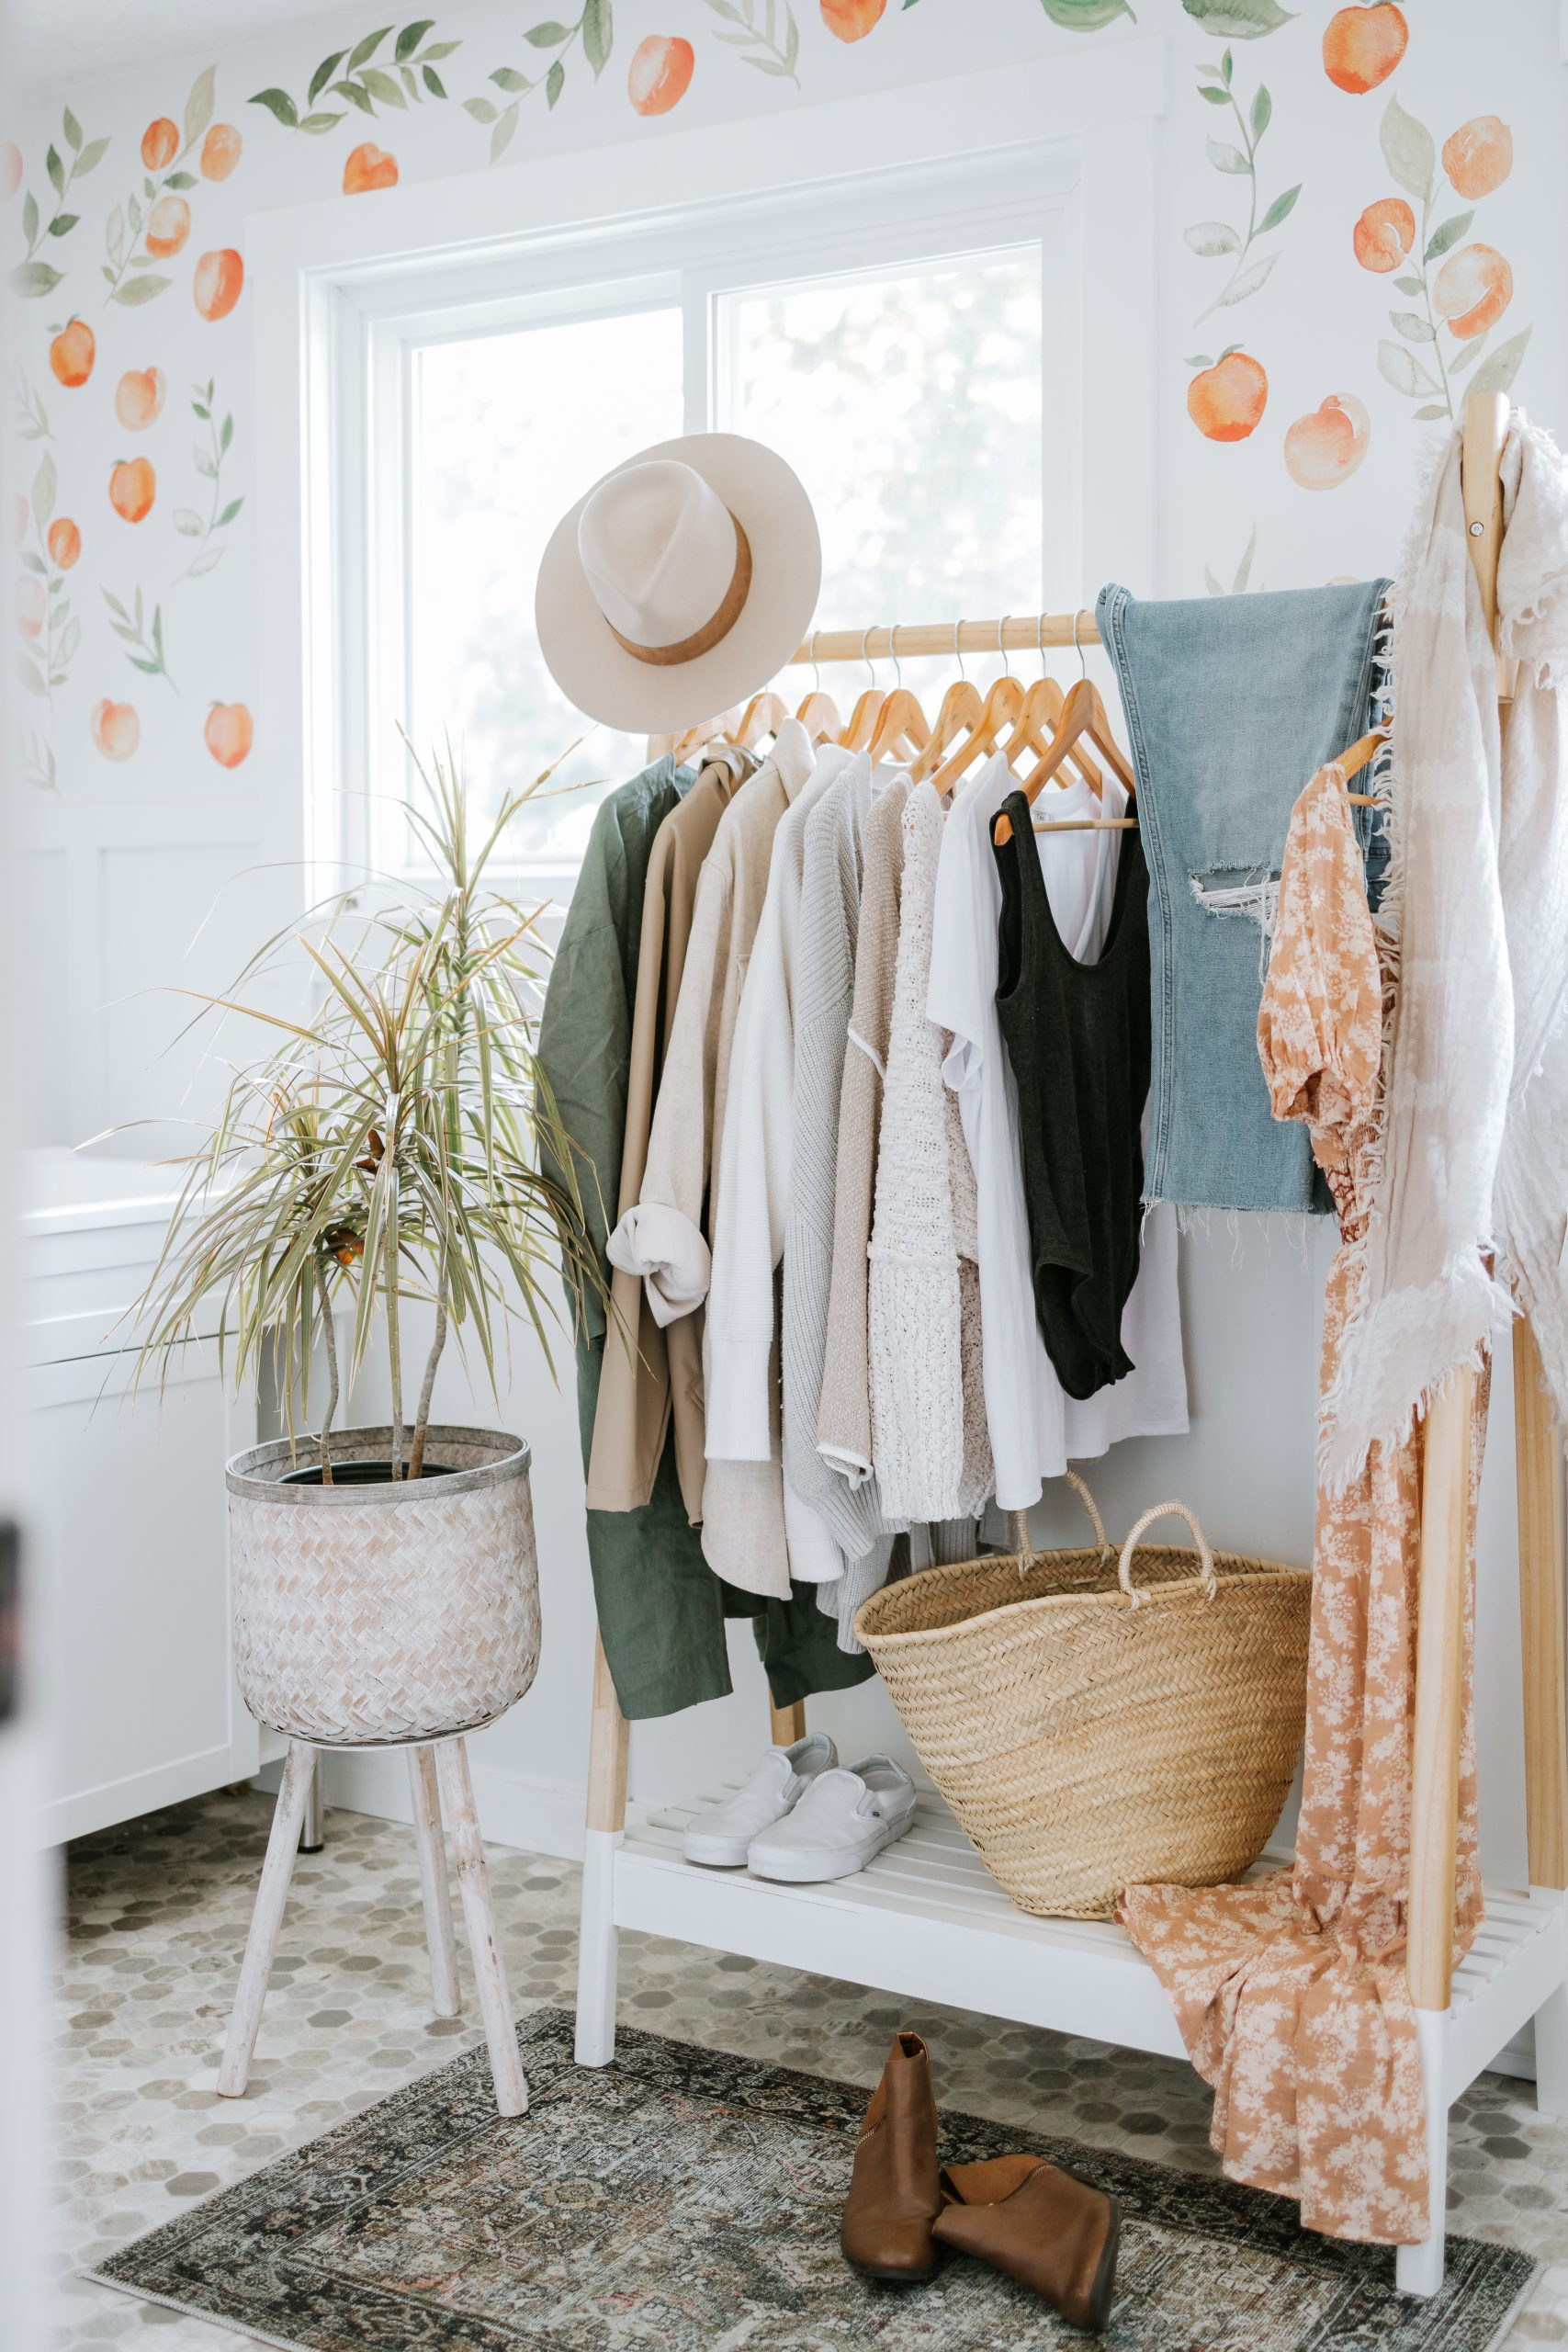 Fall Capsule Wardrobe. What a Capsule Wardrobe Is, Where I Get Mine, What I Include and Why A Capsule Wardrobe Is So Important